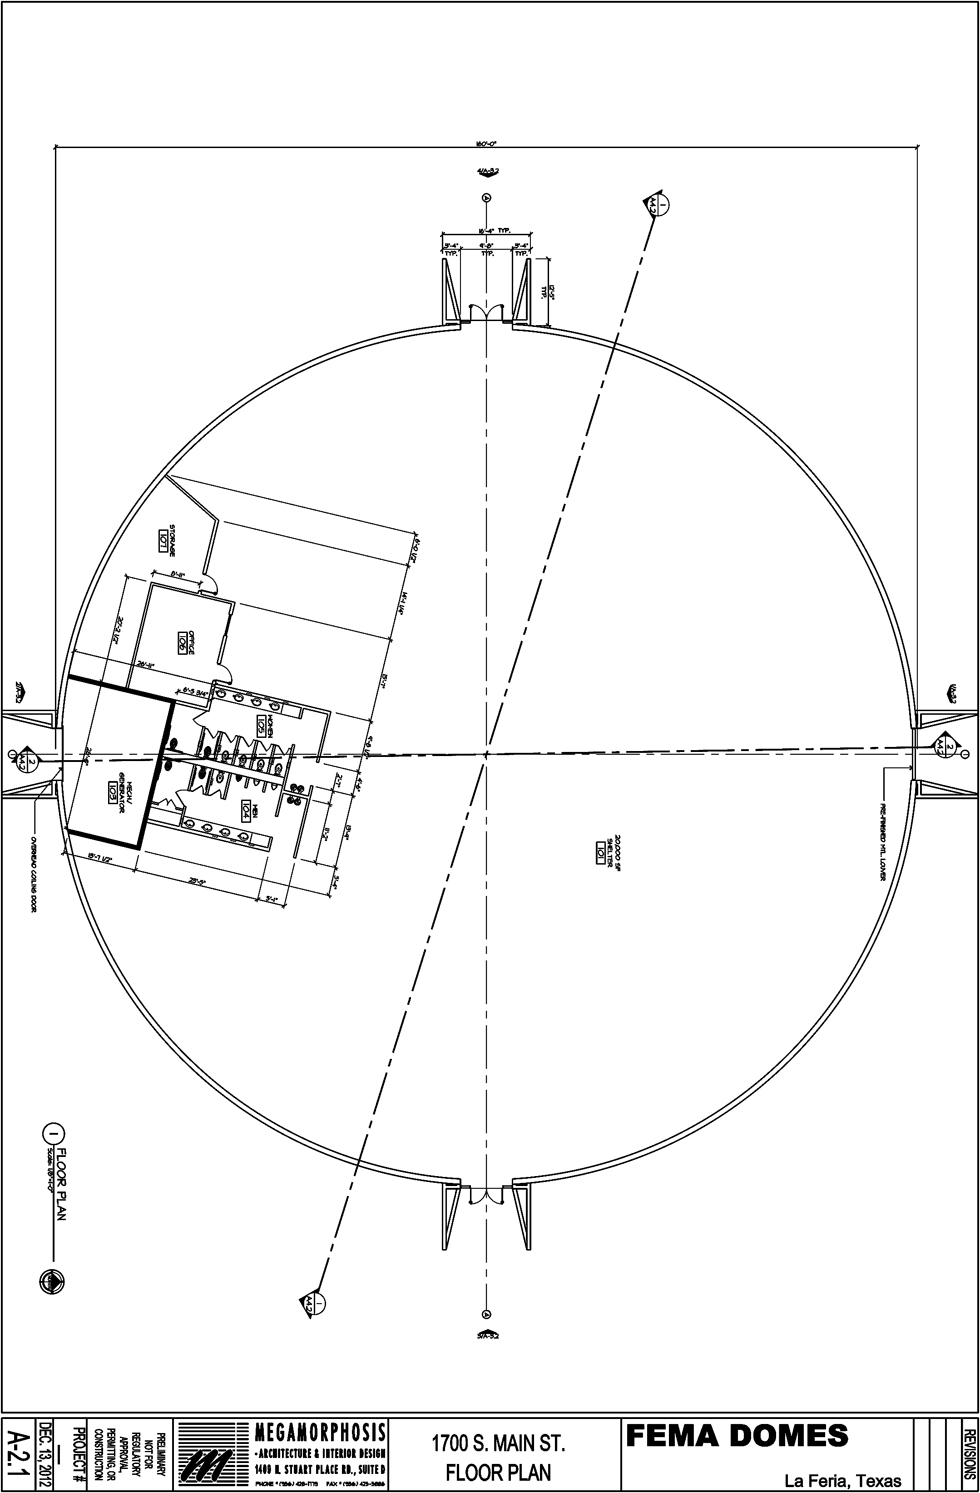 Floor plan for the dome to be built  be built at 1700 S. Main Street with a projected emergency  occupancy of 850 people